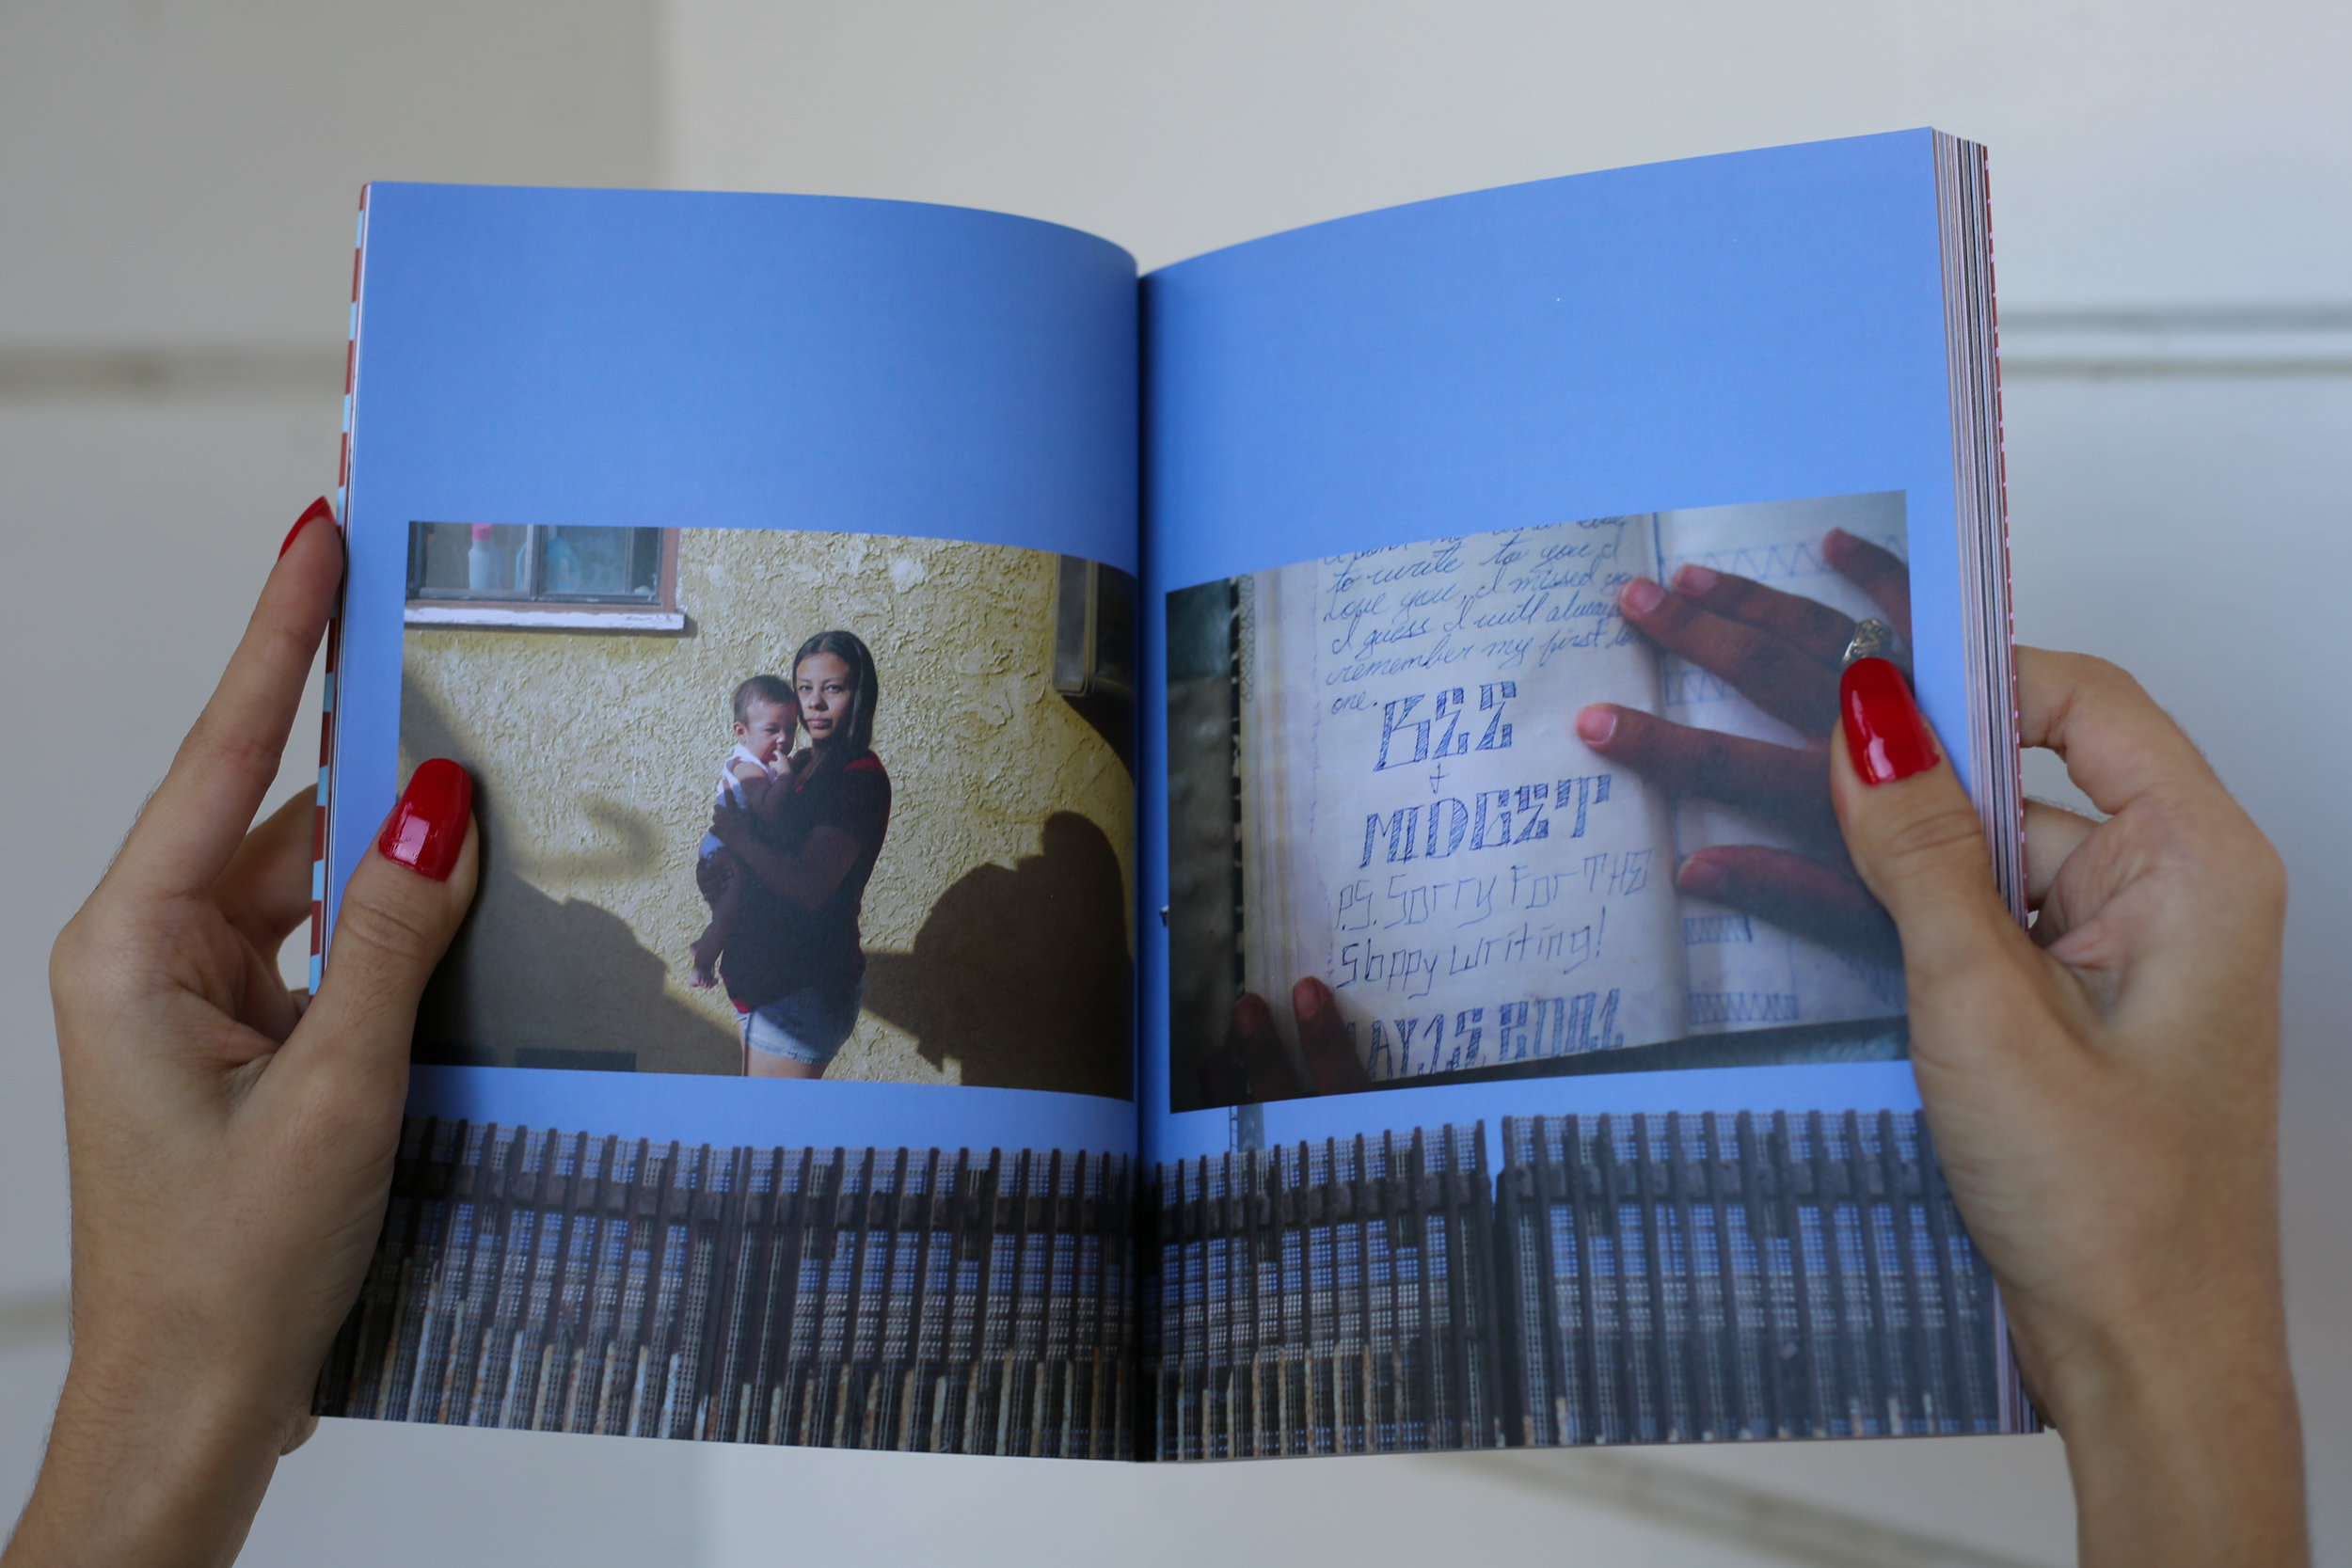 A spread of the U.S.-Mexico border with images of Maggie's story by Arlene Mejorado.